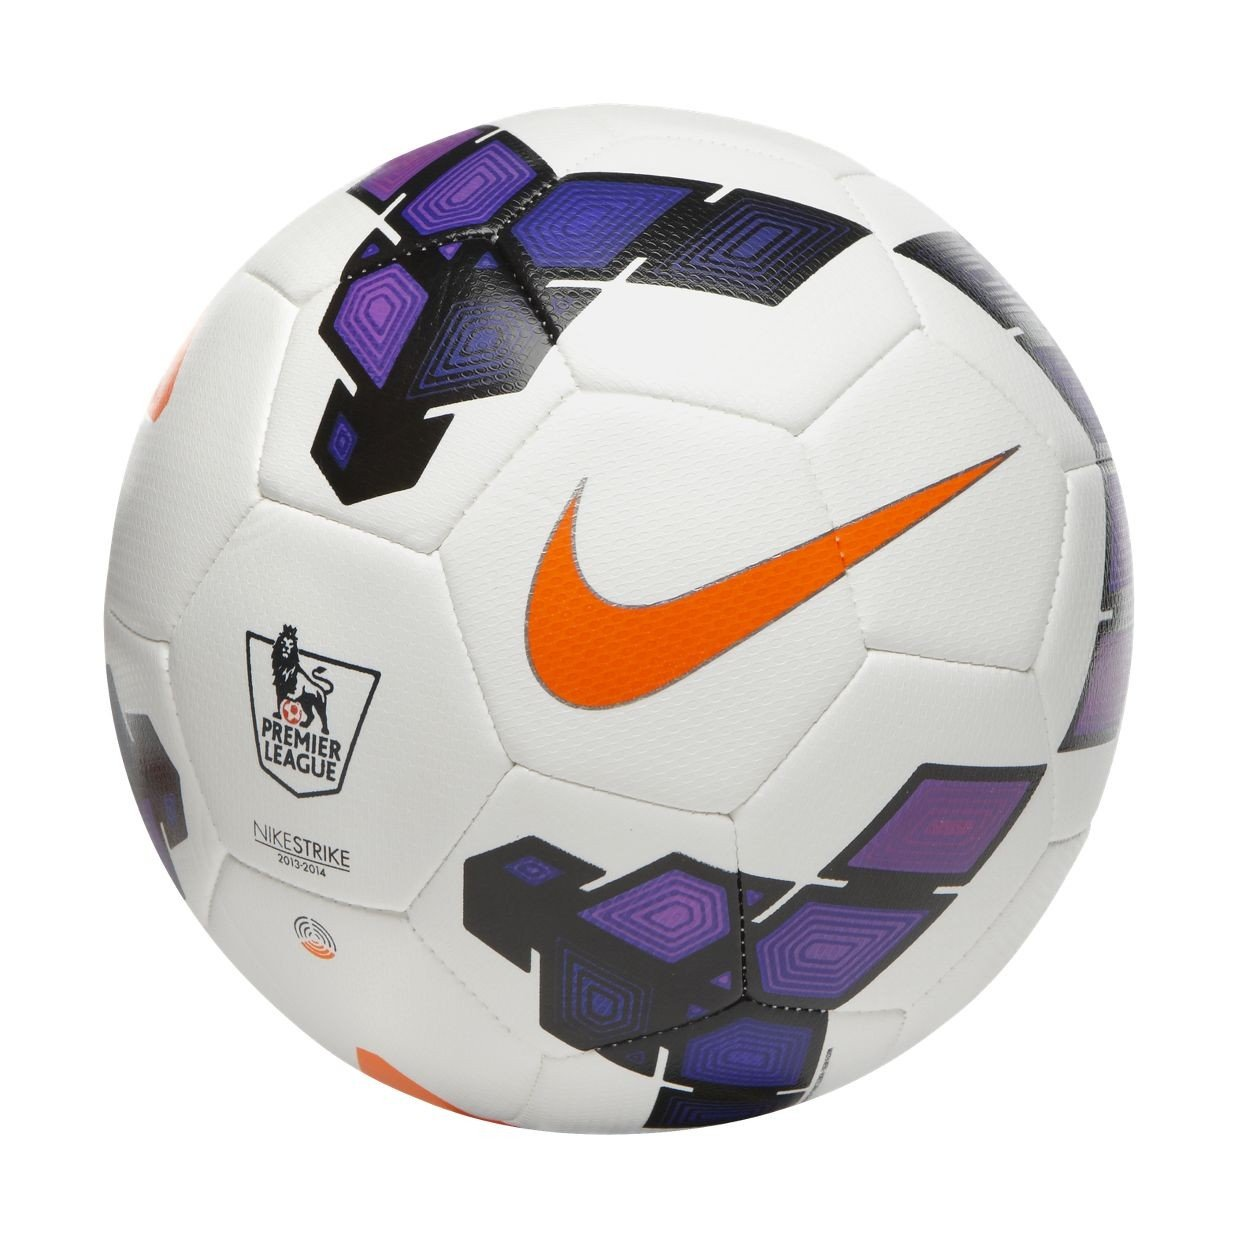 Nike Strike Football FootBall   Color: White/Purple , Size :5  Football Shoes